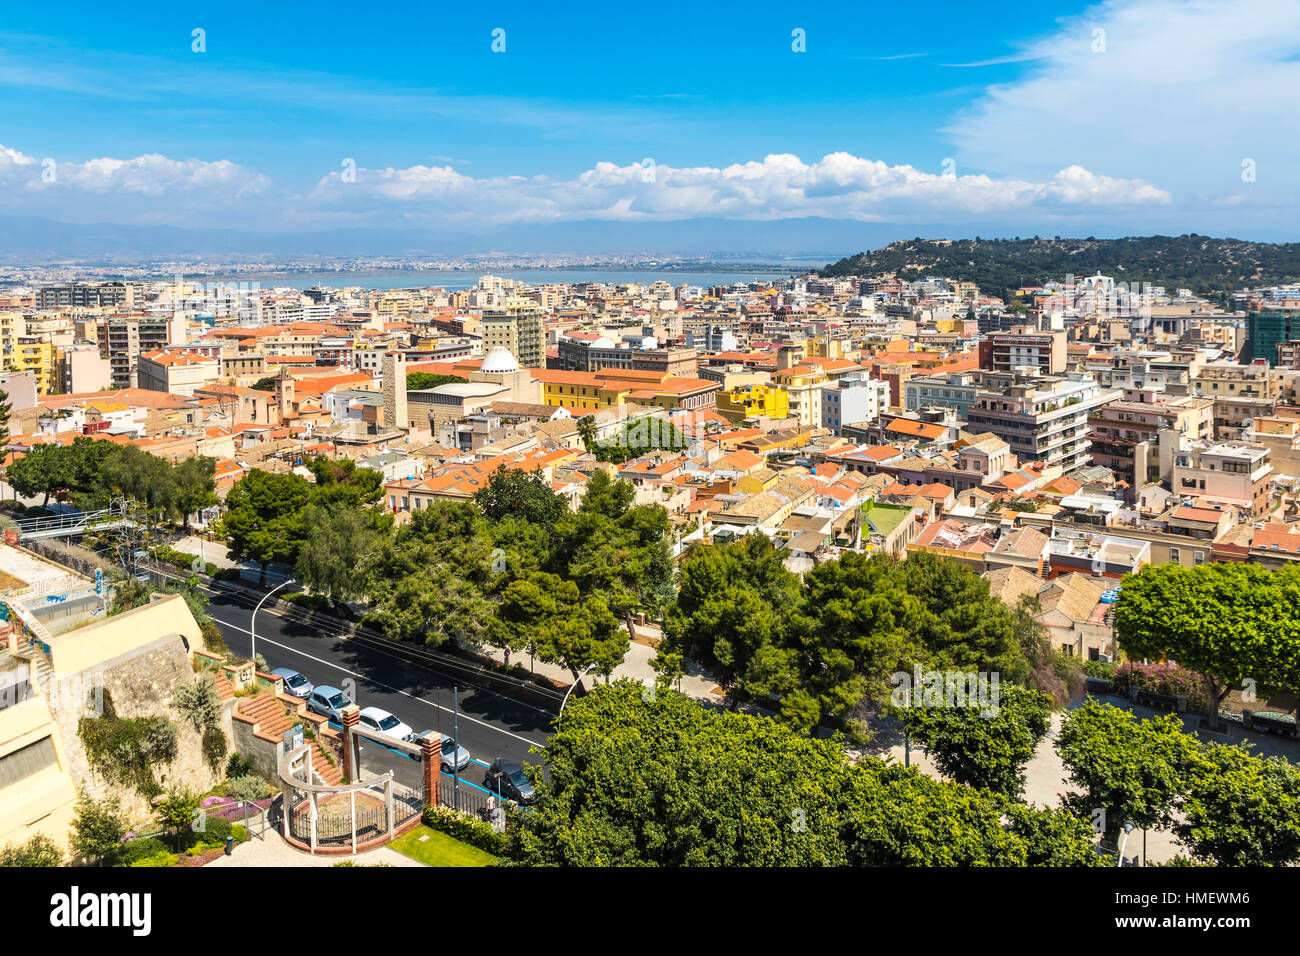 Bird eye view of Cagliari old town, Sardinia, Italy. Cagliari is the capital and the largest city of Italian island - Stock Image